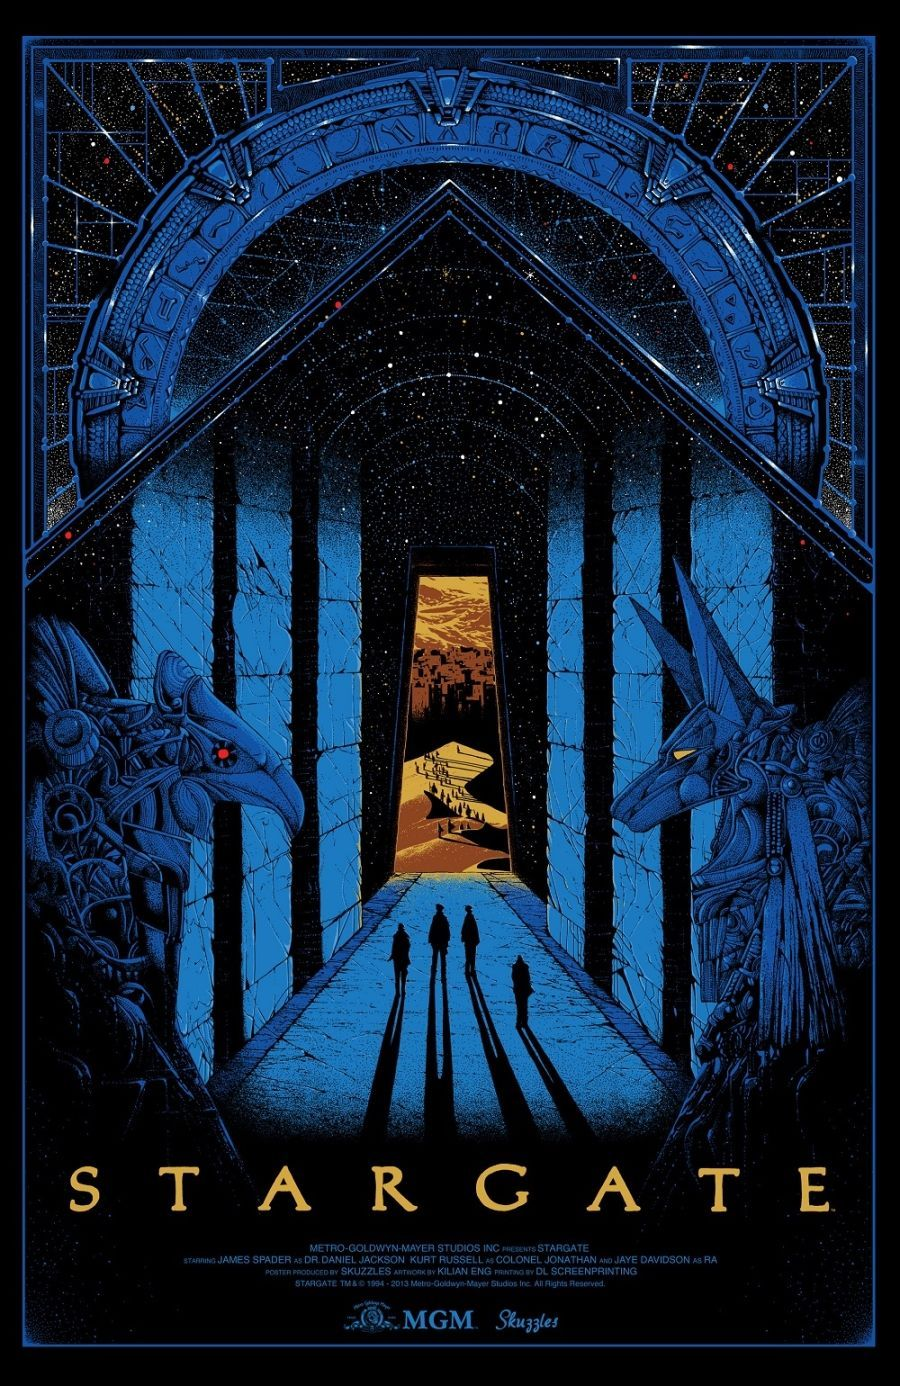 Sale info for Stargate by Kilian Eng On Wednesday December 11th, we're releasing a brand new officially licensed screenprint movie poster, showcasing artwork by Kilian Eng. For some time now we wanted to work on a screenprint with Kilian and Stargate was definitely the perfect opportunity. Call us crazy, but when it comes to illustrating science-fi #movietimes